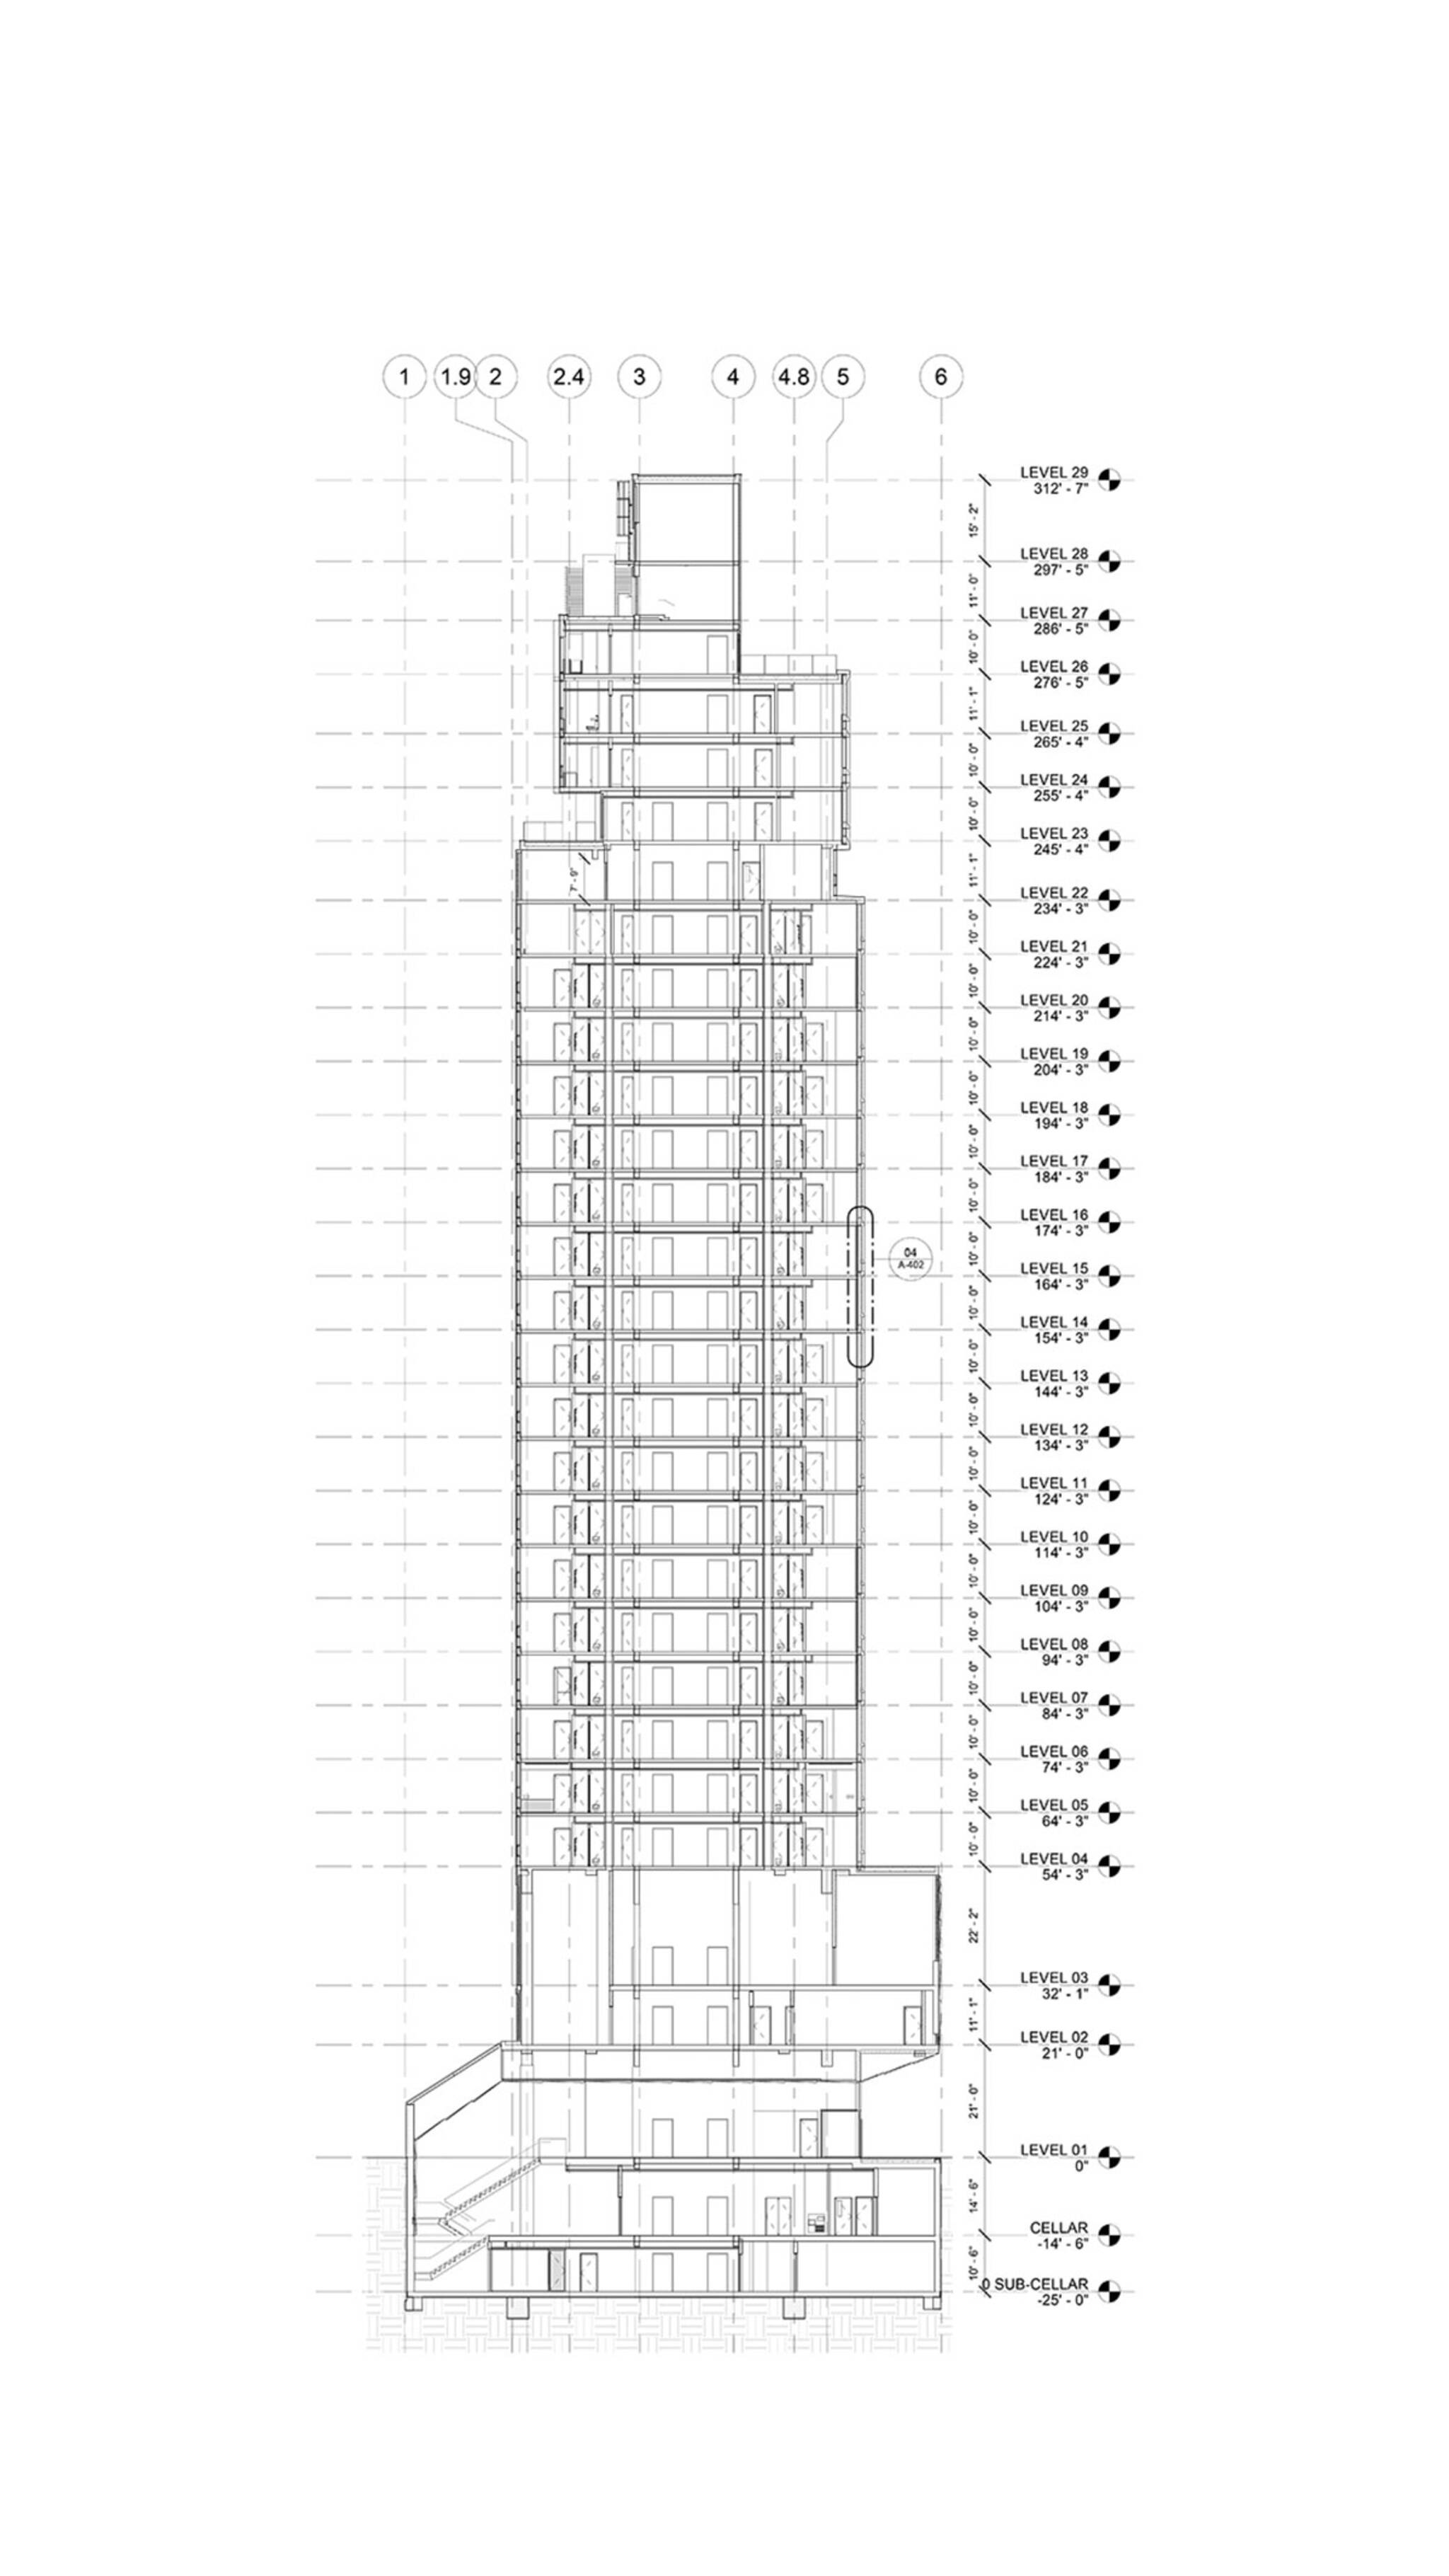 Building section of the Brooklyn Motto Hotel project, a modular hotel tower on Schermerhorn Street in Brooklyn, New York designed by the architecture studio Danny Forster & Architecture